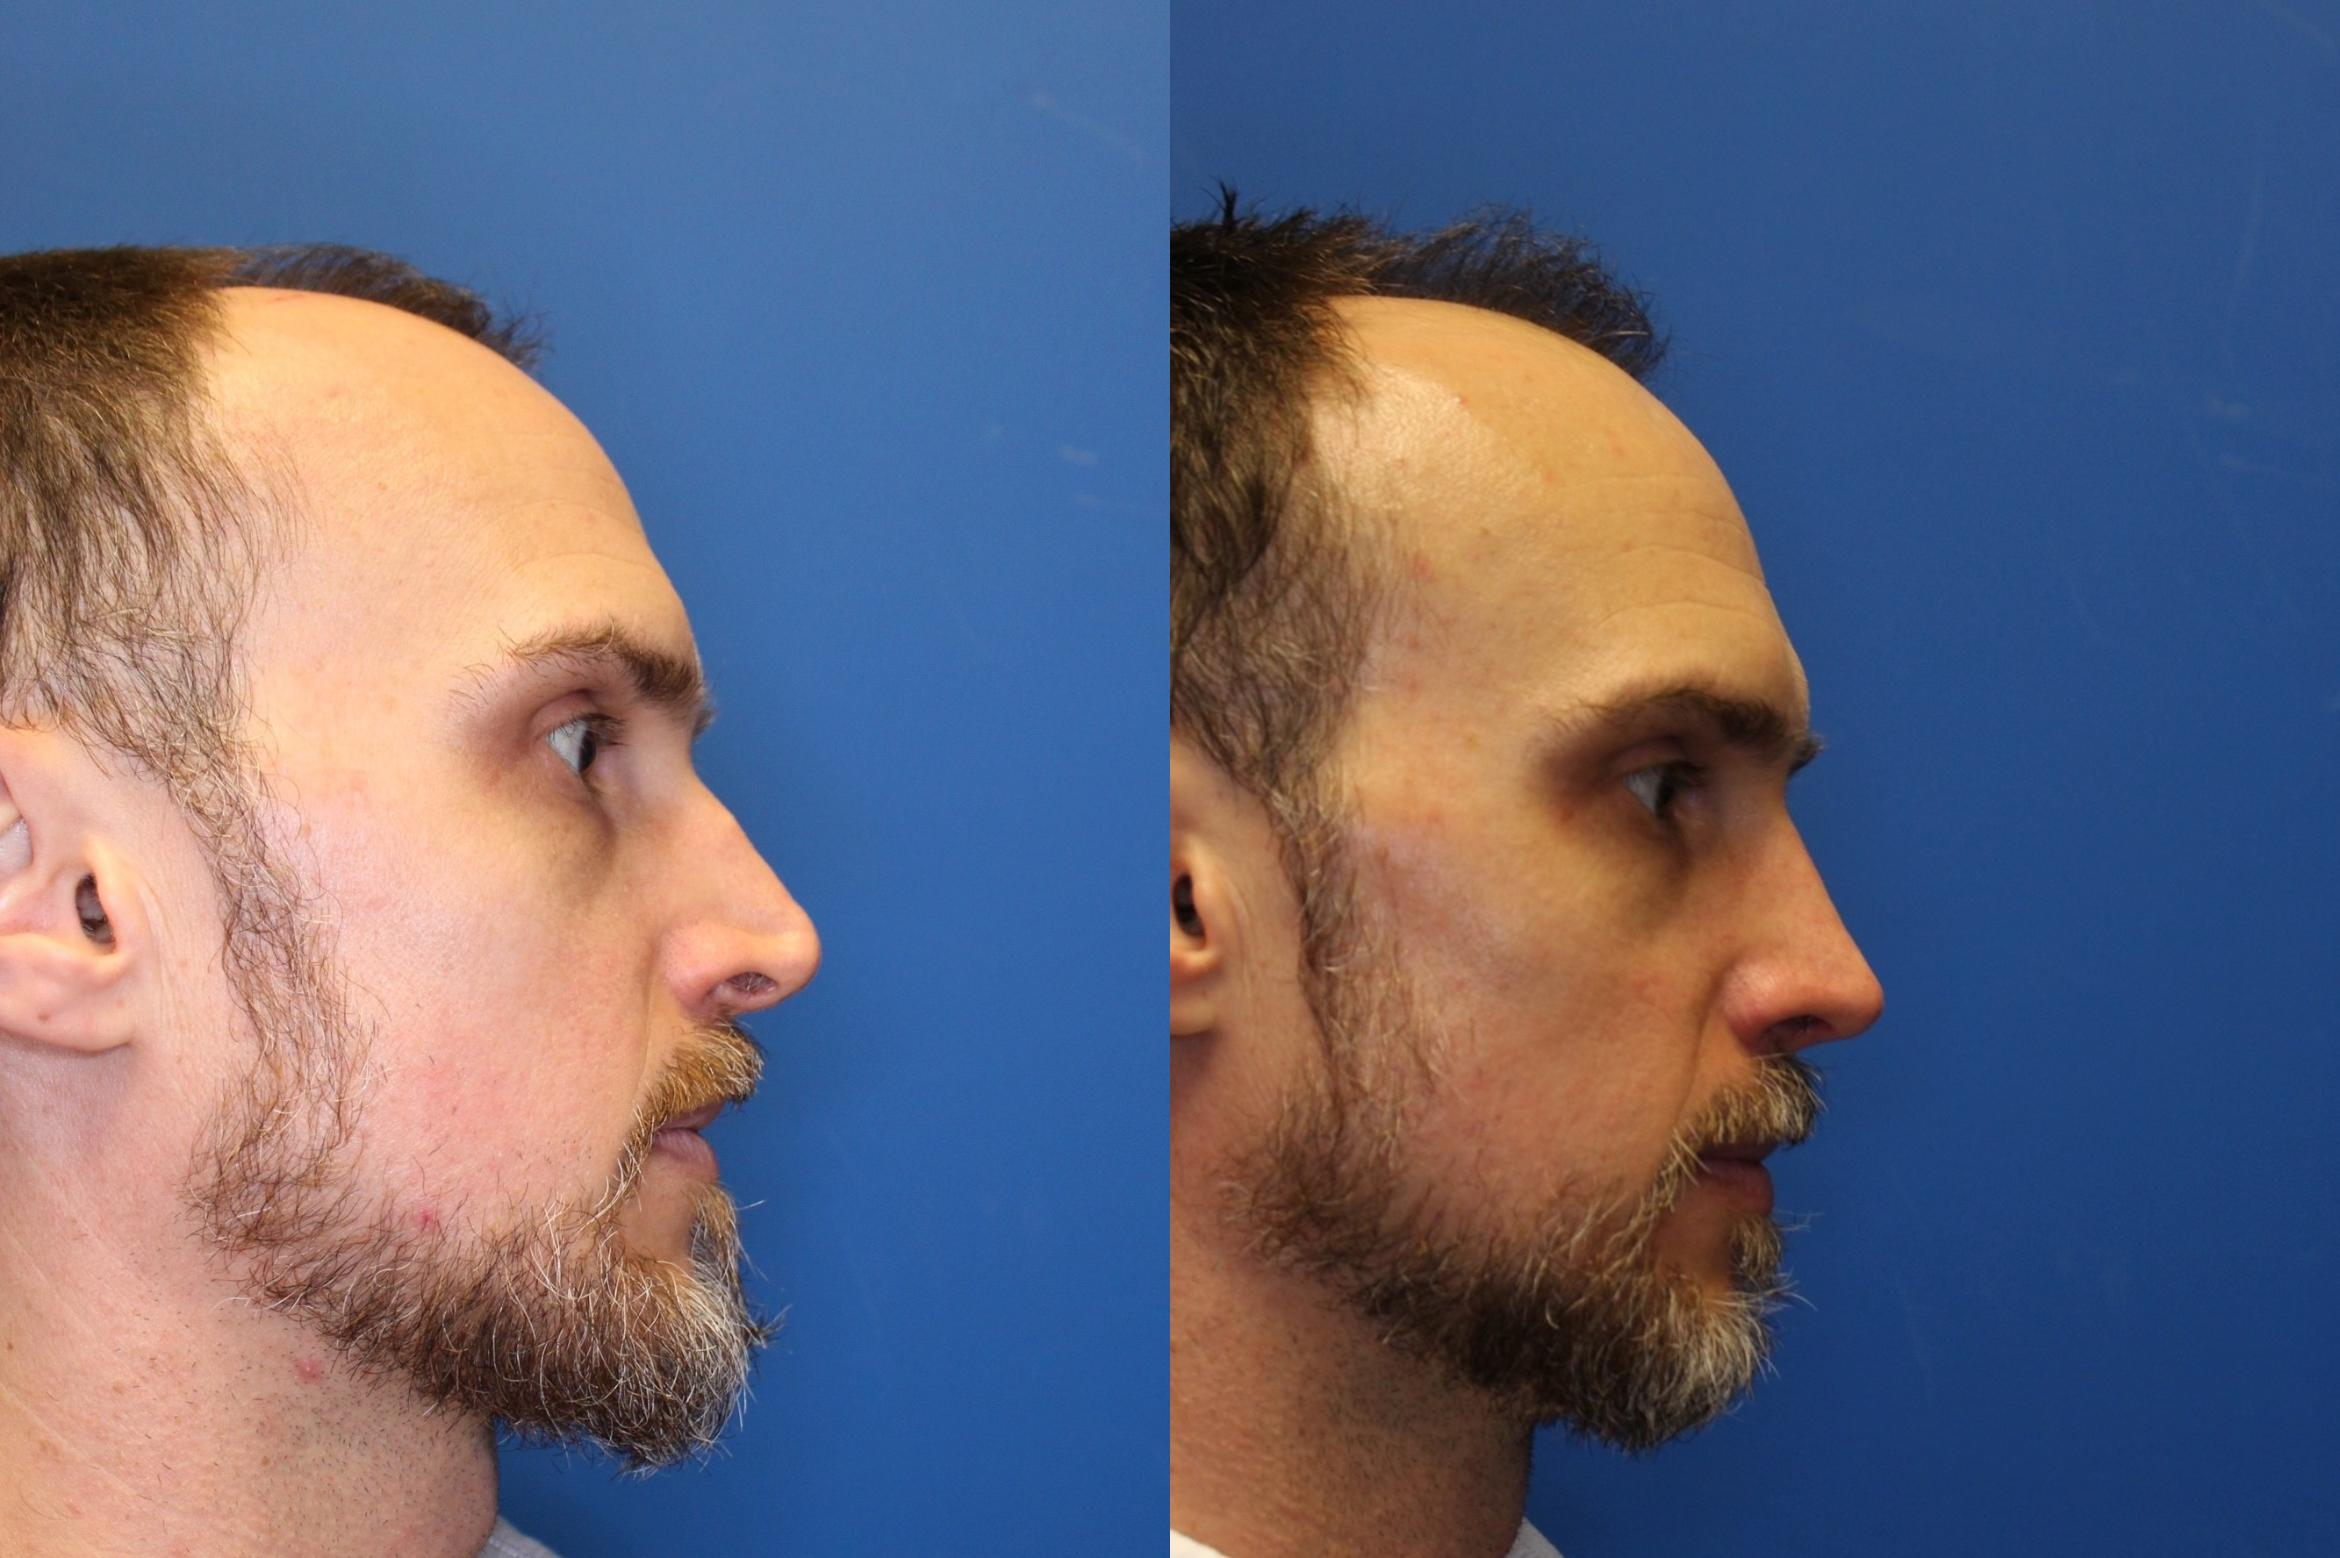 Nose Surgery Before & After Photo | San Francisco, CA | Kaiser Permanente Cosmetic Services